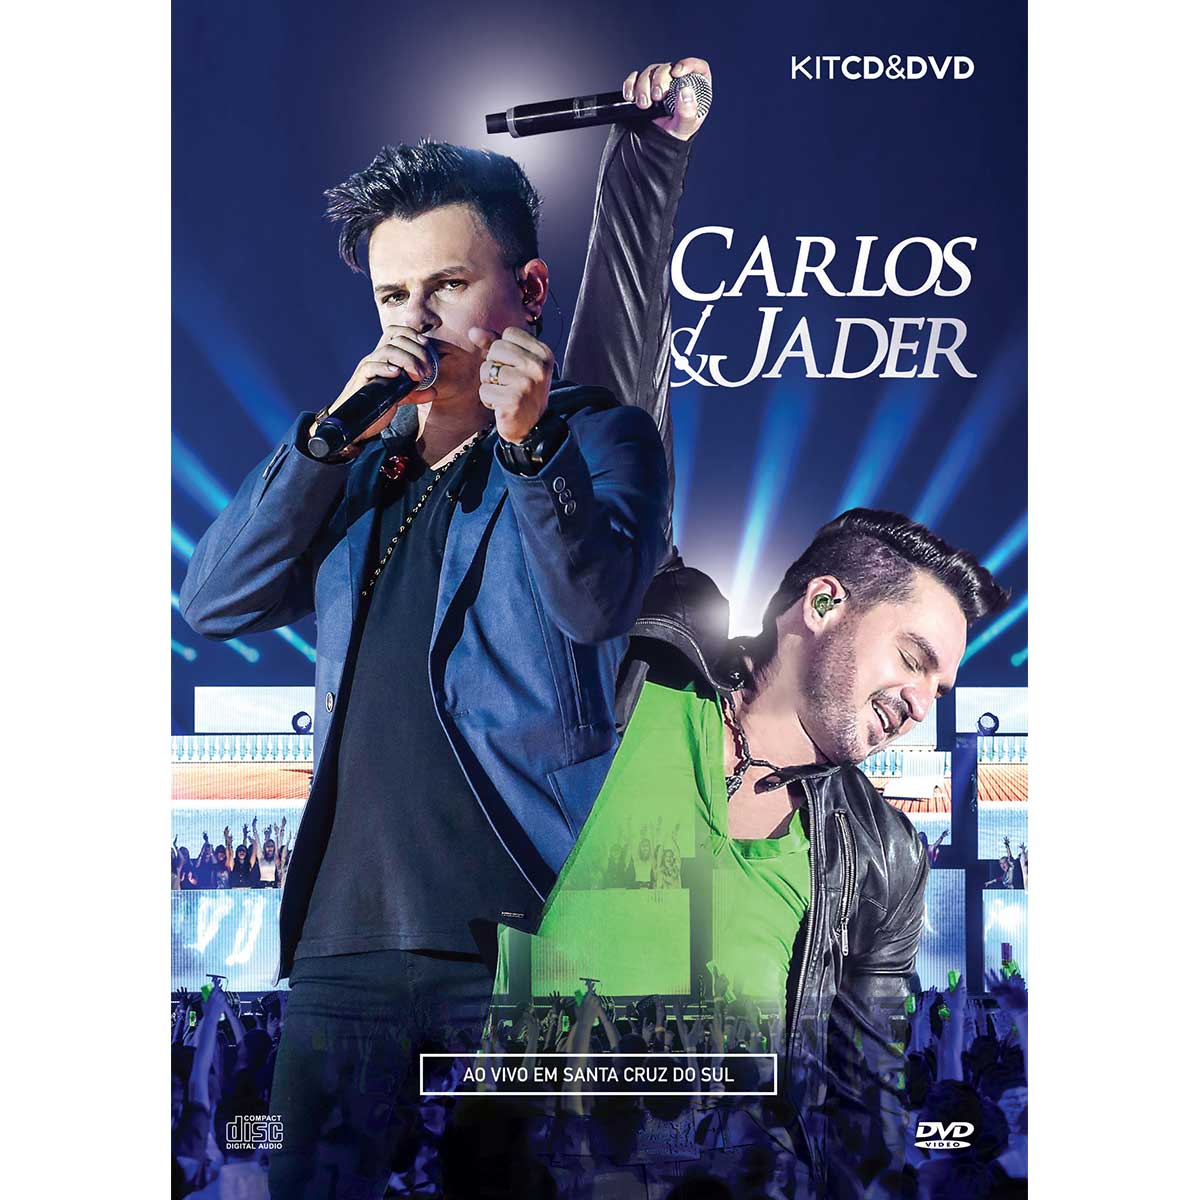 Kit CD+ DVD Carlos & Jader Ao Vivo Em Santa Cruz do Sul